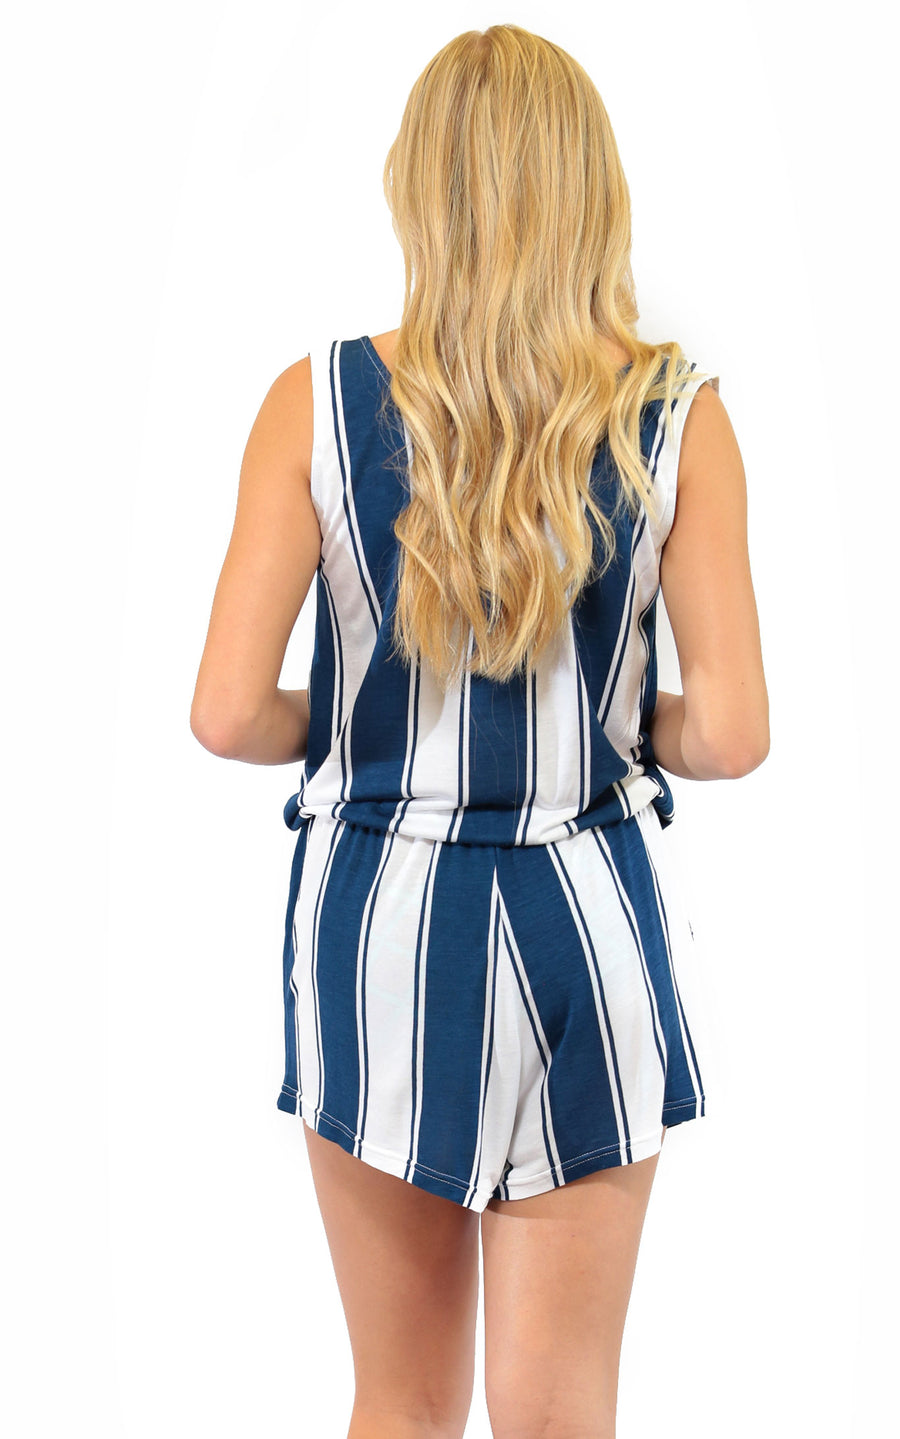 Cabana Stripe Callie Romper - FINAL SALE